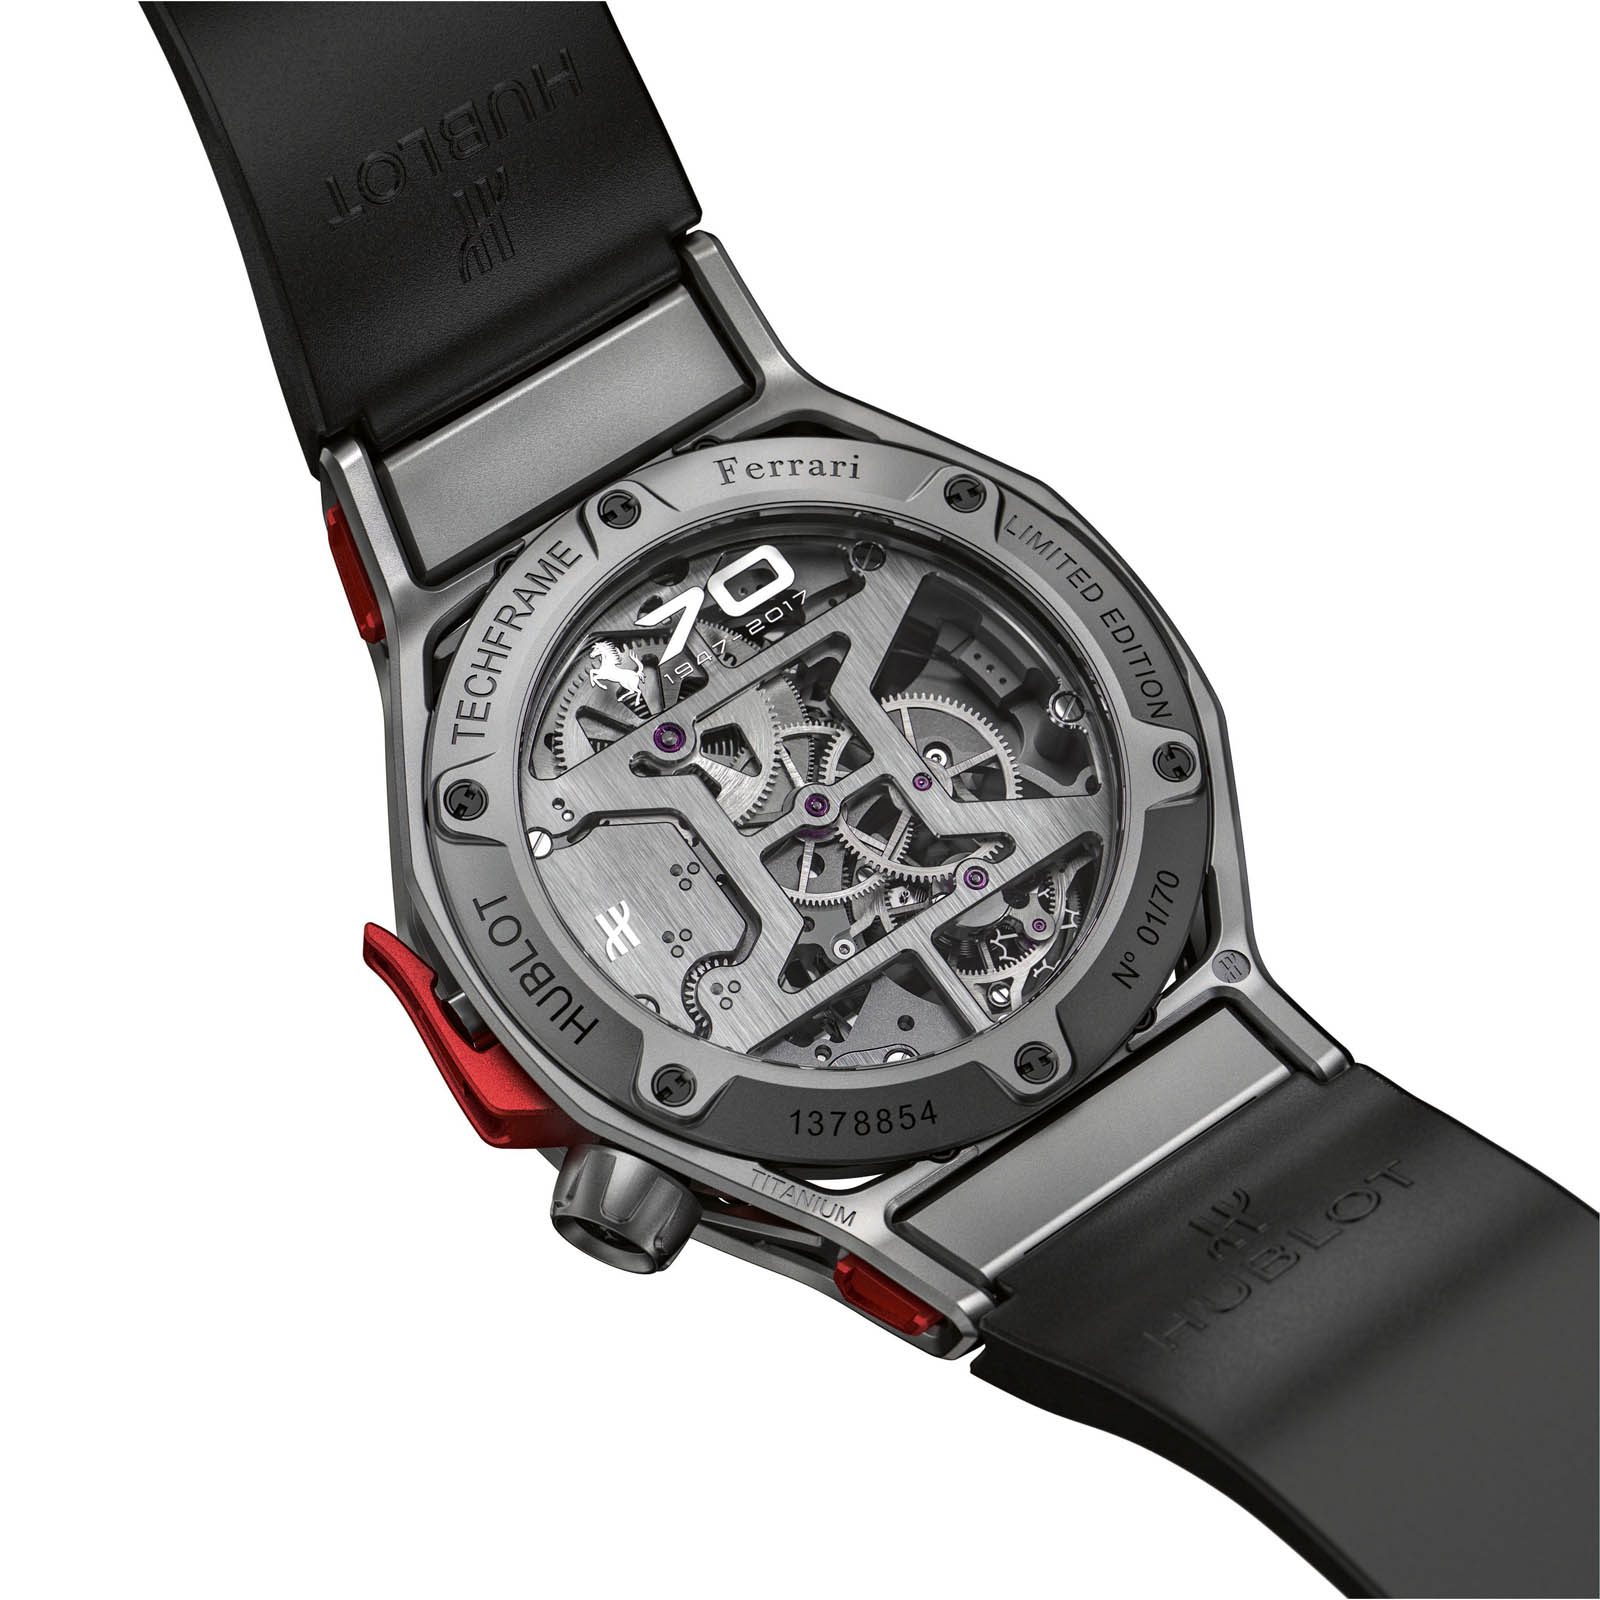 Hublot Techframe (15)